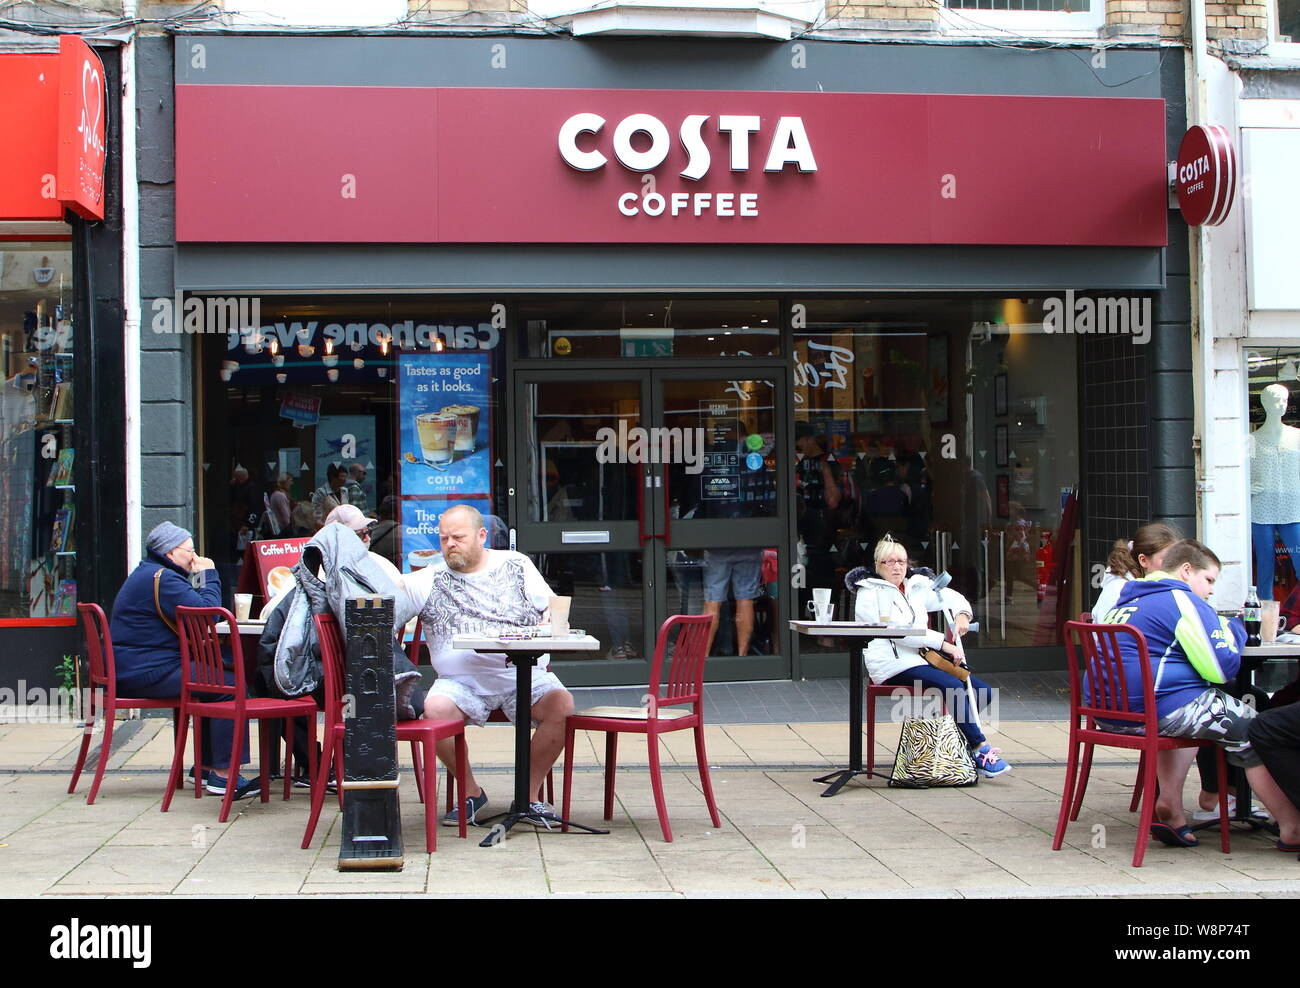 August 10 2019 Paignton Devon United Kingdom People Are Seen At Costa Coffee Shop In Devon Credit Image Keith Mayhew Sopa Images Via Zuma Wire Stock Photo Alamy